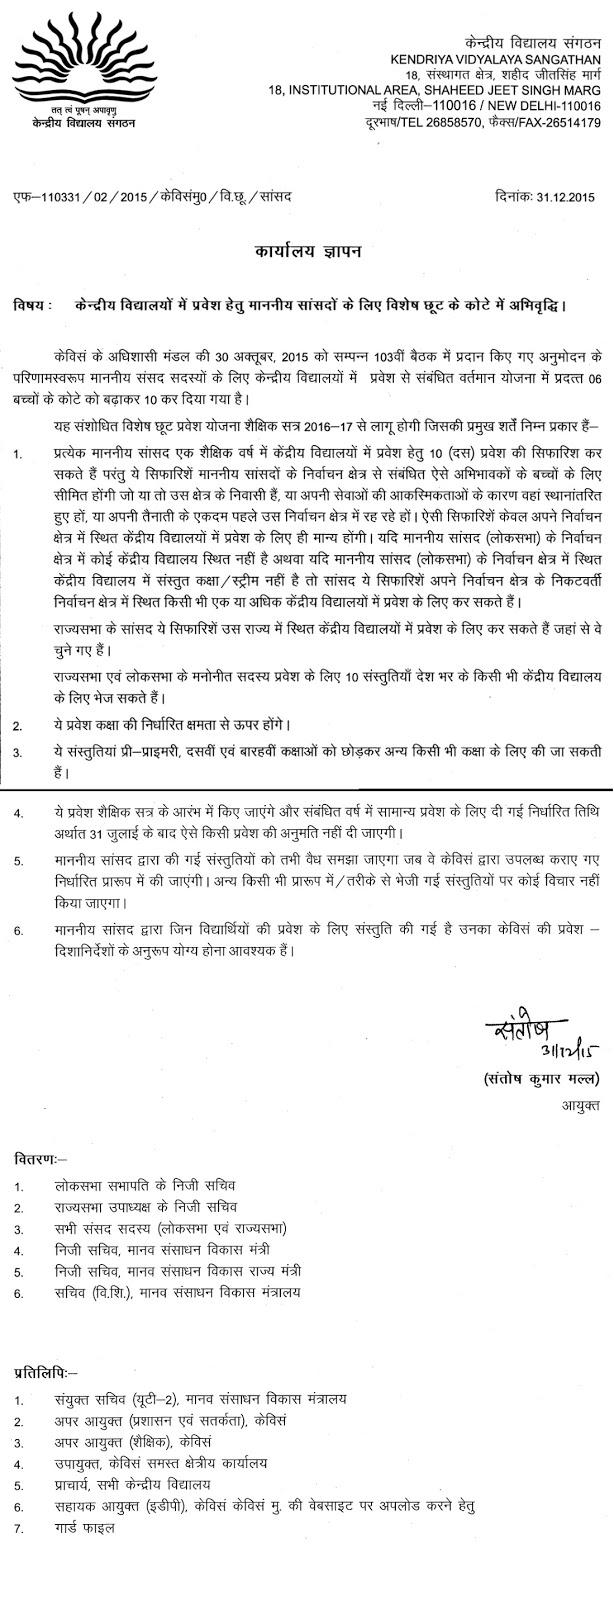 kvs dispensation scheme hindi